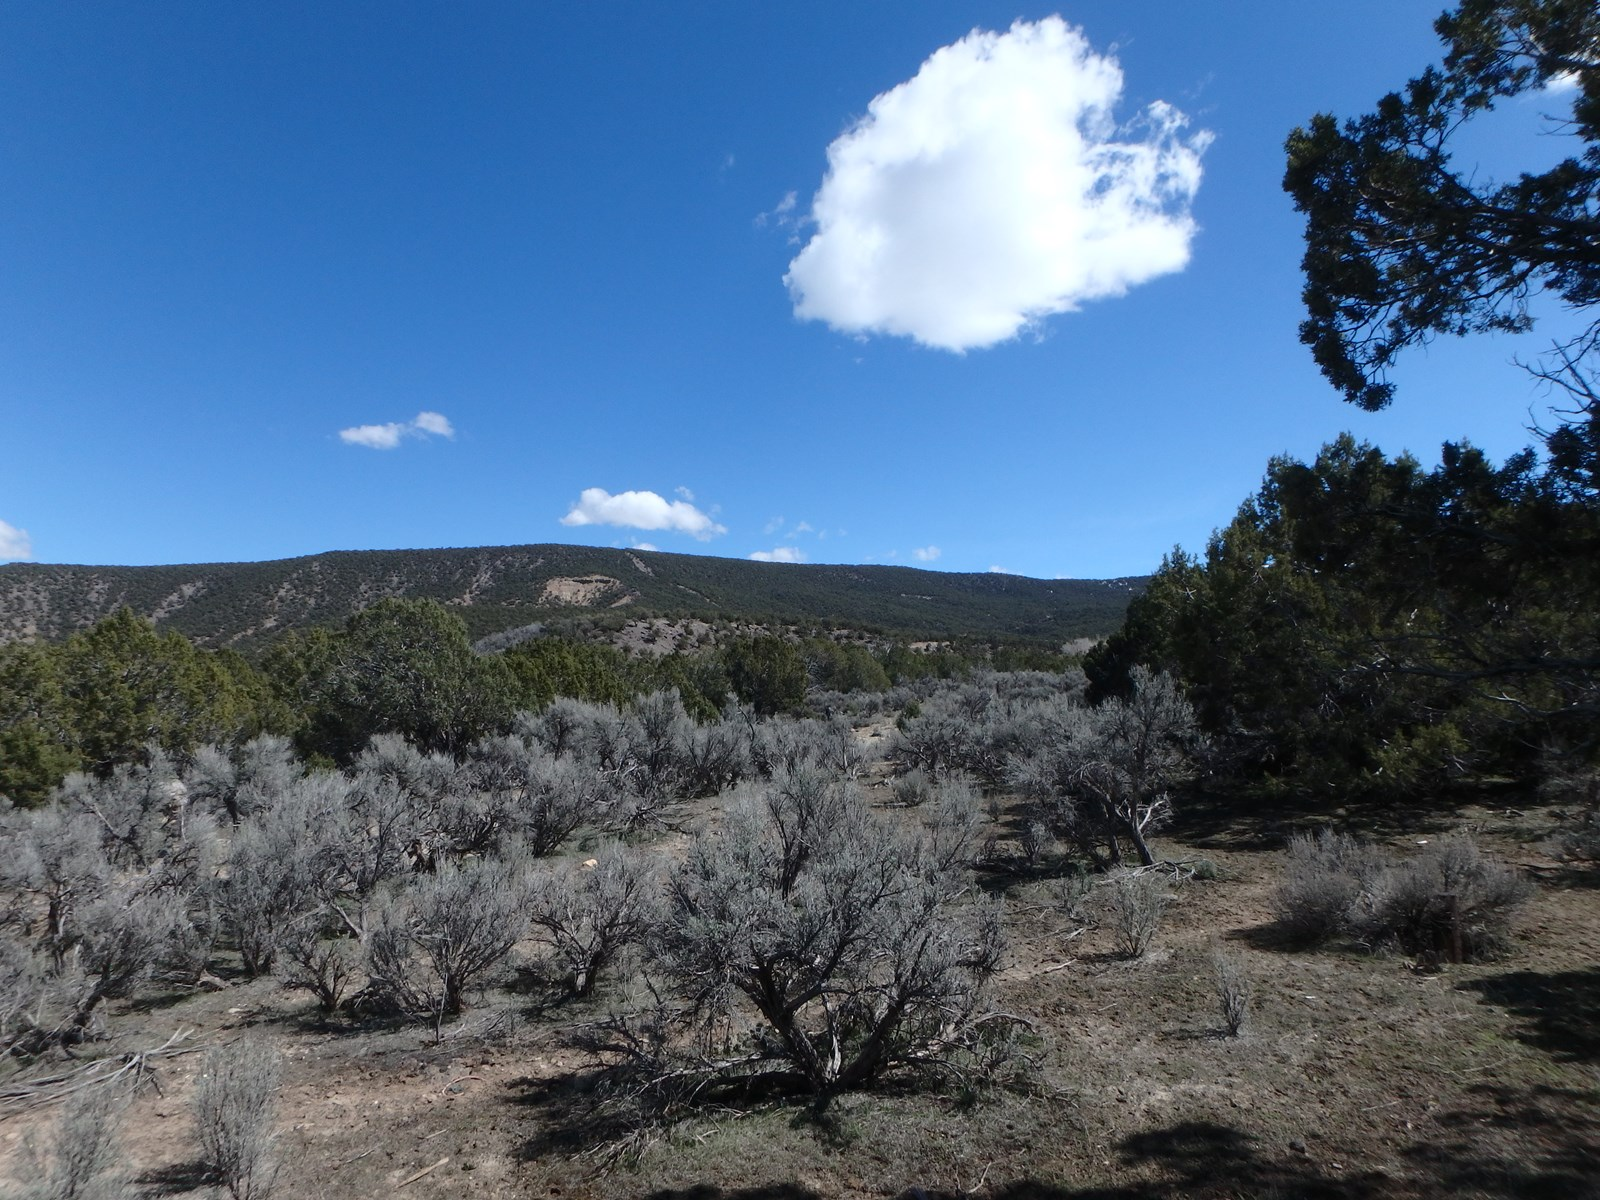 80 Acres of Prime Hunting Ground For Sale in Colorado